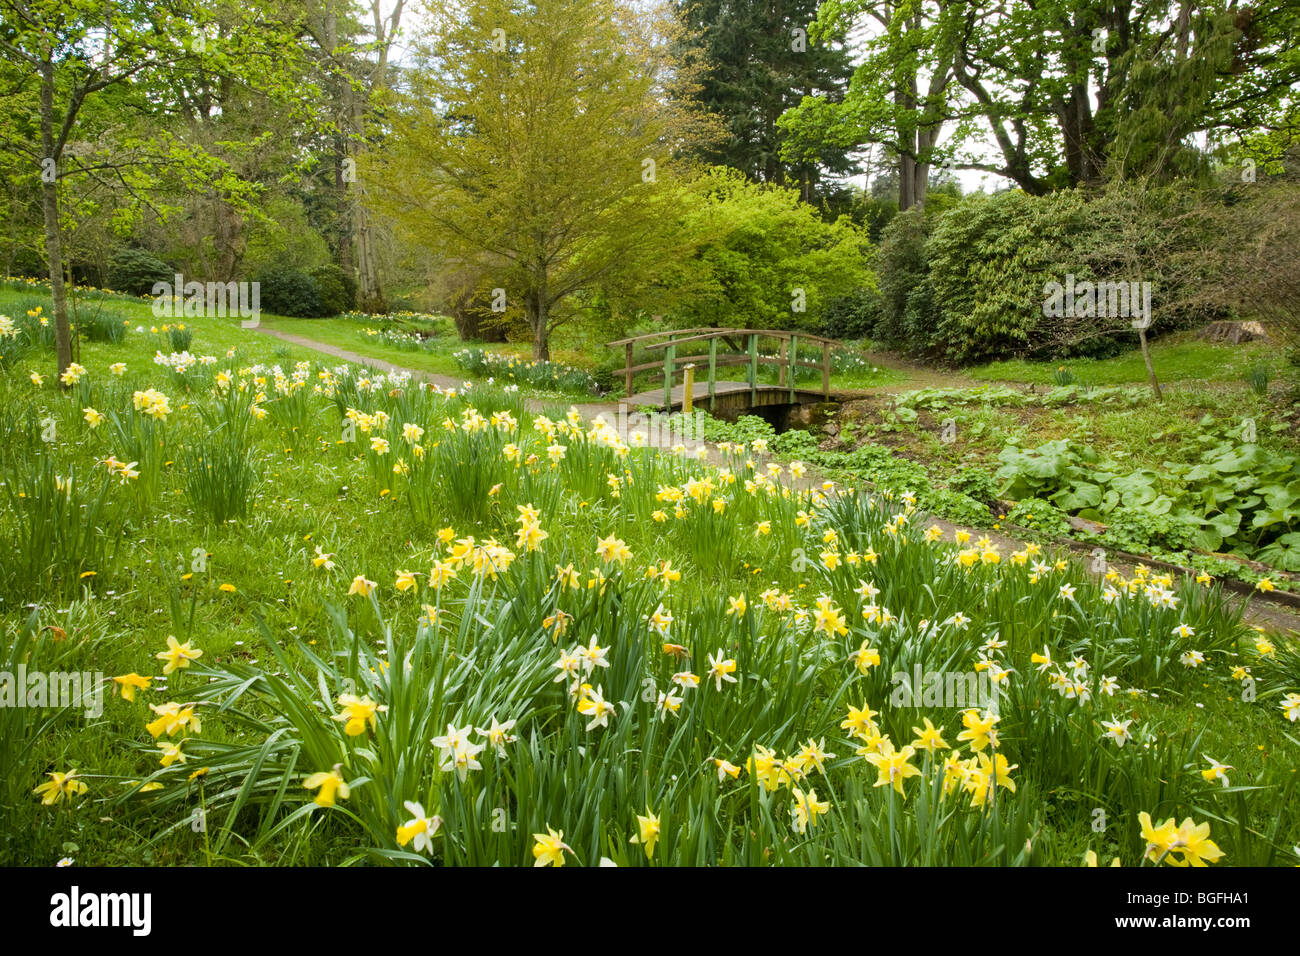 Mesmerizing Daffodils Kailzie Gardens Peebles Scottish Borders Stock Photo  With Licious Daffodils Kailzie Gardens Peebles Scottish Borders With Nice Sun Garden Dubrovnik Also Used Lawn And Garden Tractors In Addition British Garden Plants And Mayday Gardens Blackheath As Well As Making Garden Furniture Additionally Private Gardens From Alamycom With   Licious Daffodils Kailzie Gardens Peebles Scottish Borders Stock Photo  With Nice Daffodils Kailzie Gardens Peebles Scottish Borders And Mesmerizing Sun Garden Dubrovnik Also Used Lawn And Garden Tractors In Addition British Garden Plants From Alamycom